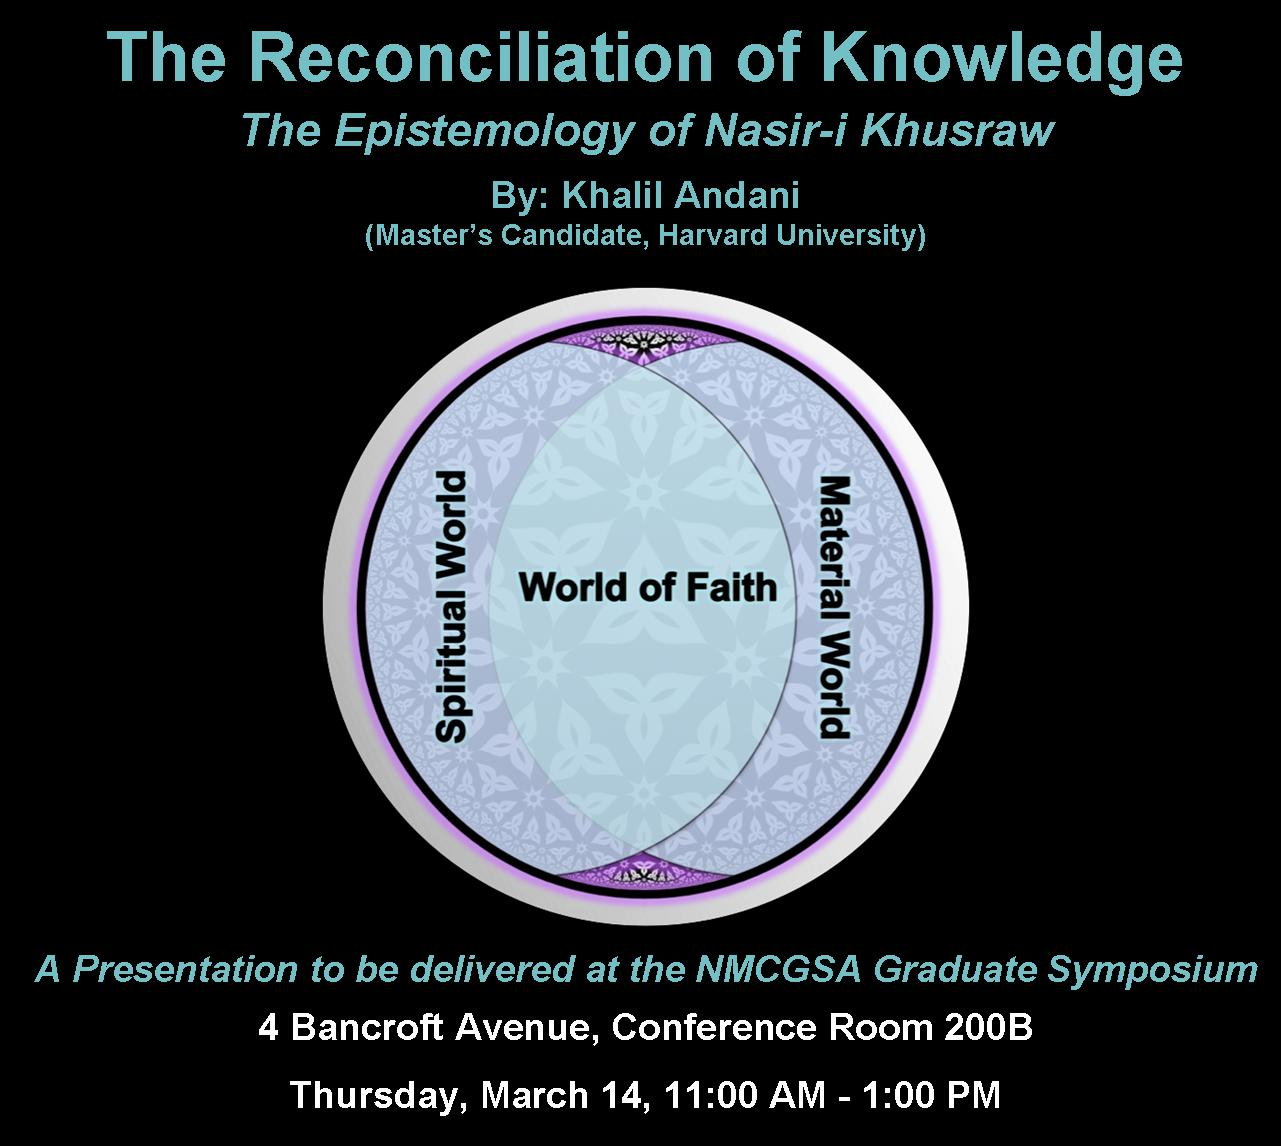 Video: The Concept of Knowledge ('ilm) in Nasir-i Khusraw's Philosophy, by Khalil Andani